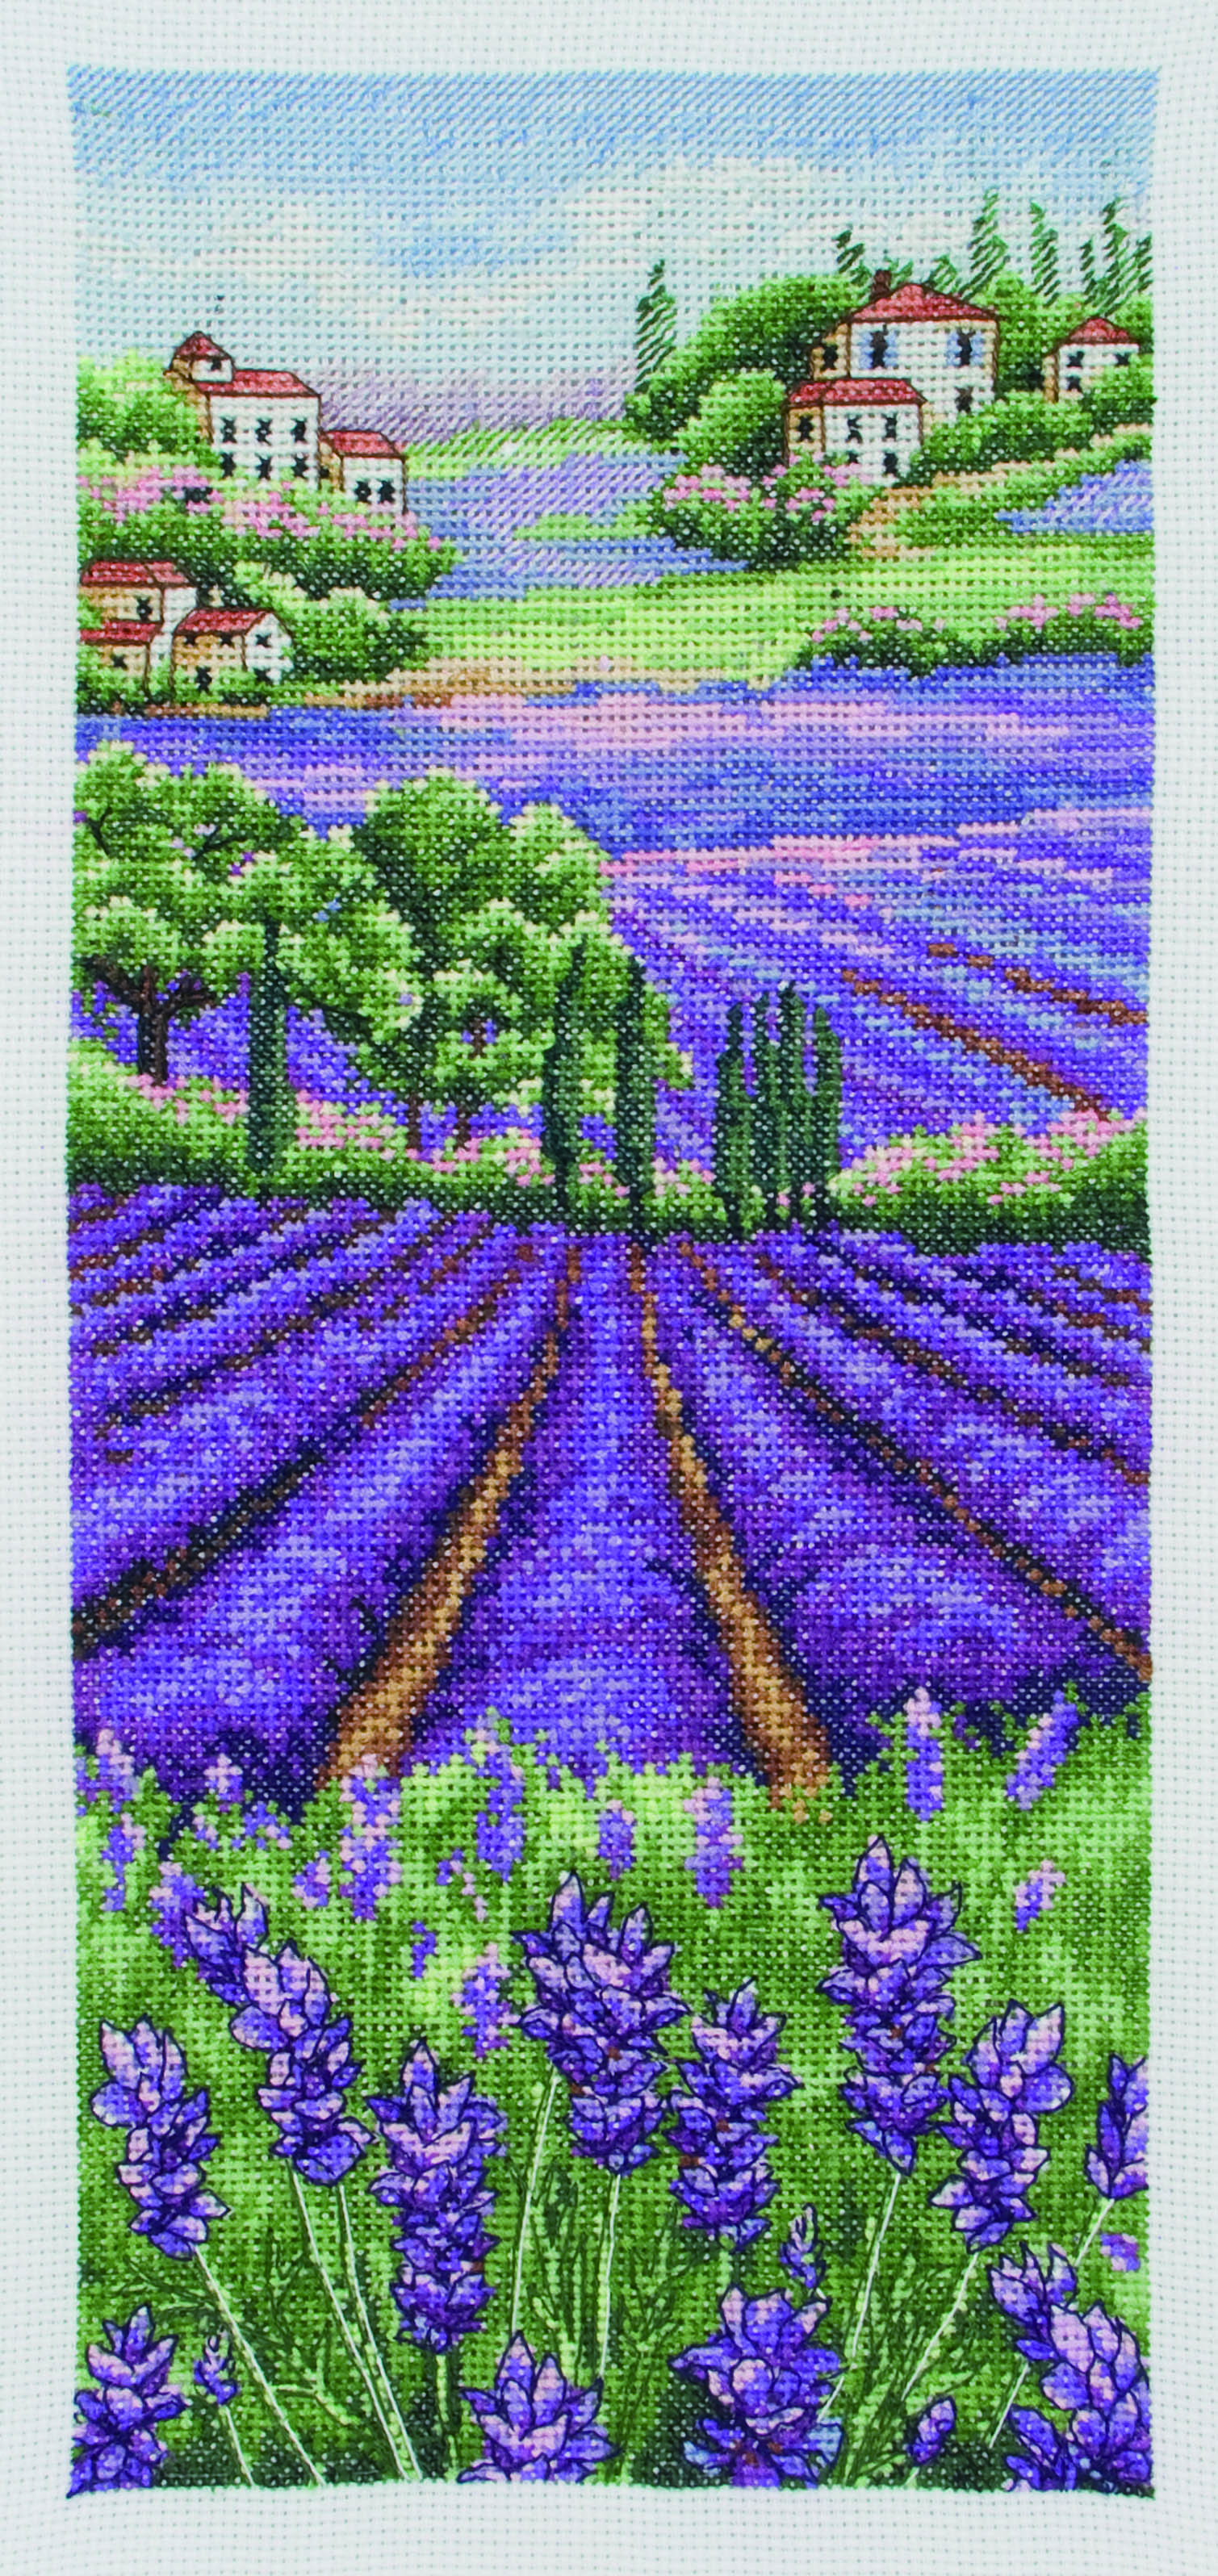 PCE0807  Anchor Cross StitchProvence Lavender Scape. Anchor. Набор для вышивания нитками